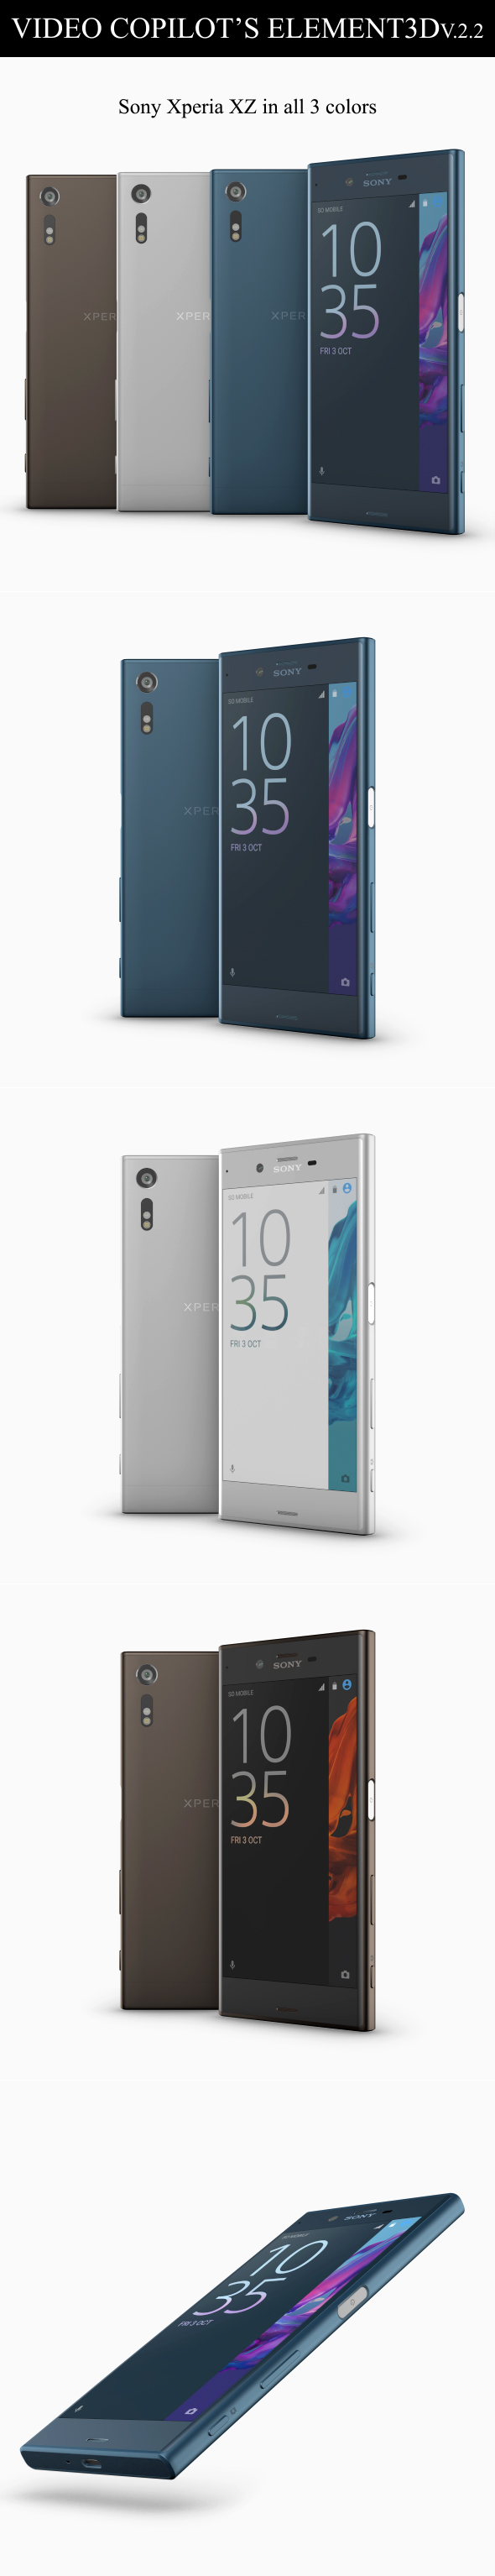 Element3D - Sony Xperia XZ - 3DOcean Item for Sale